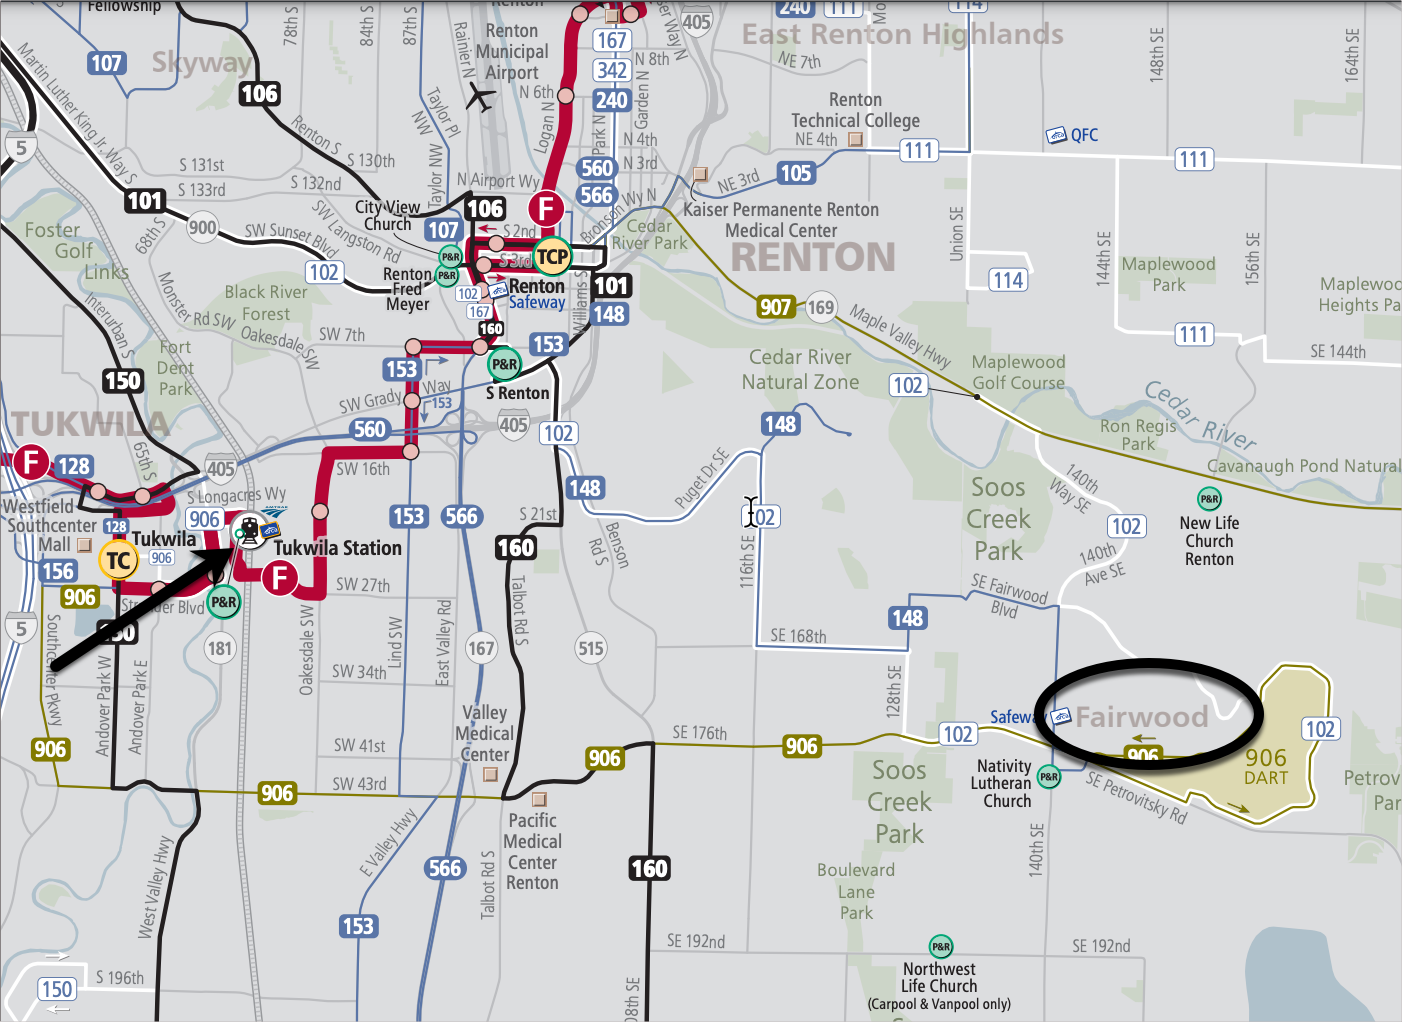 Bus lines in southeast King county